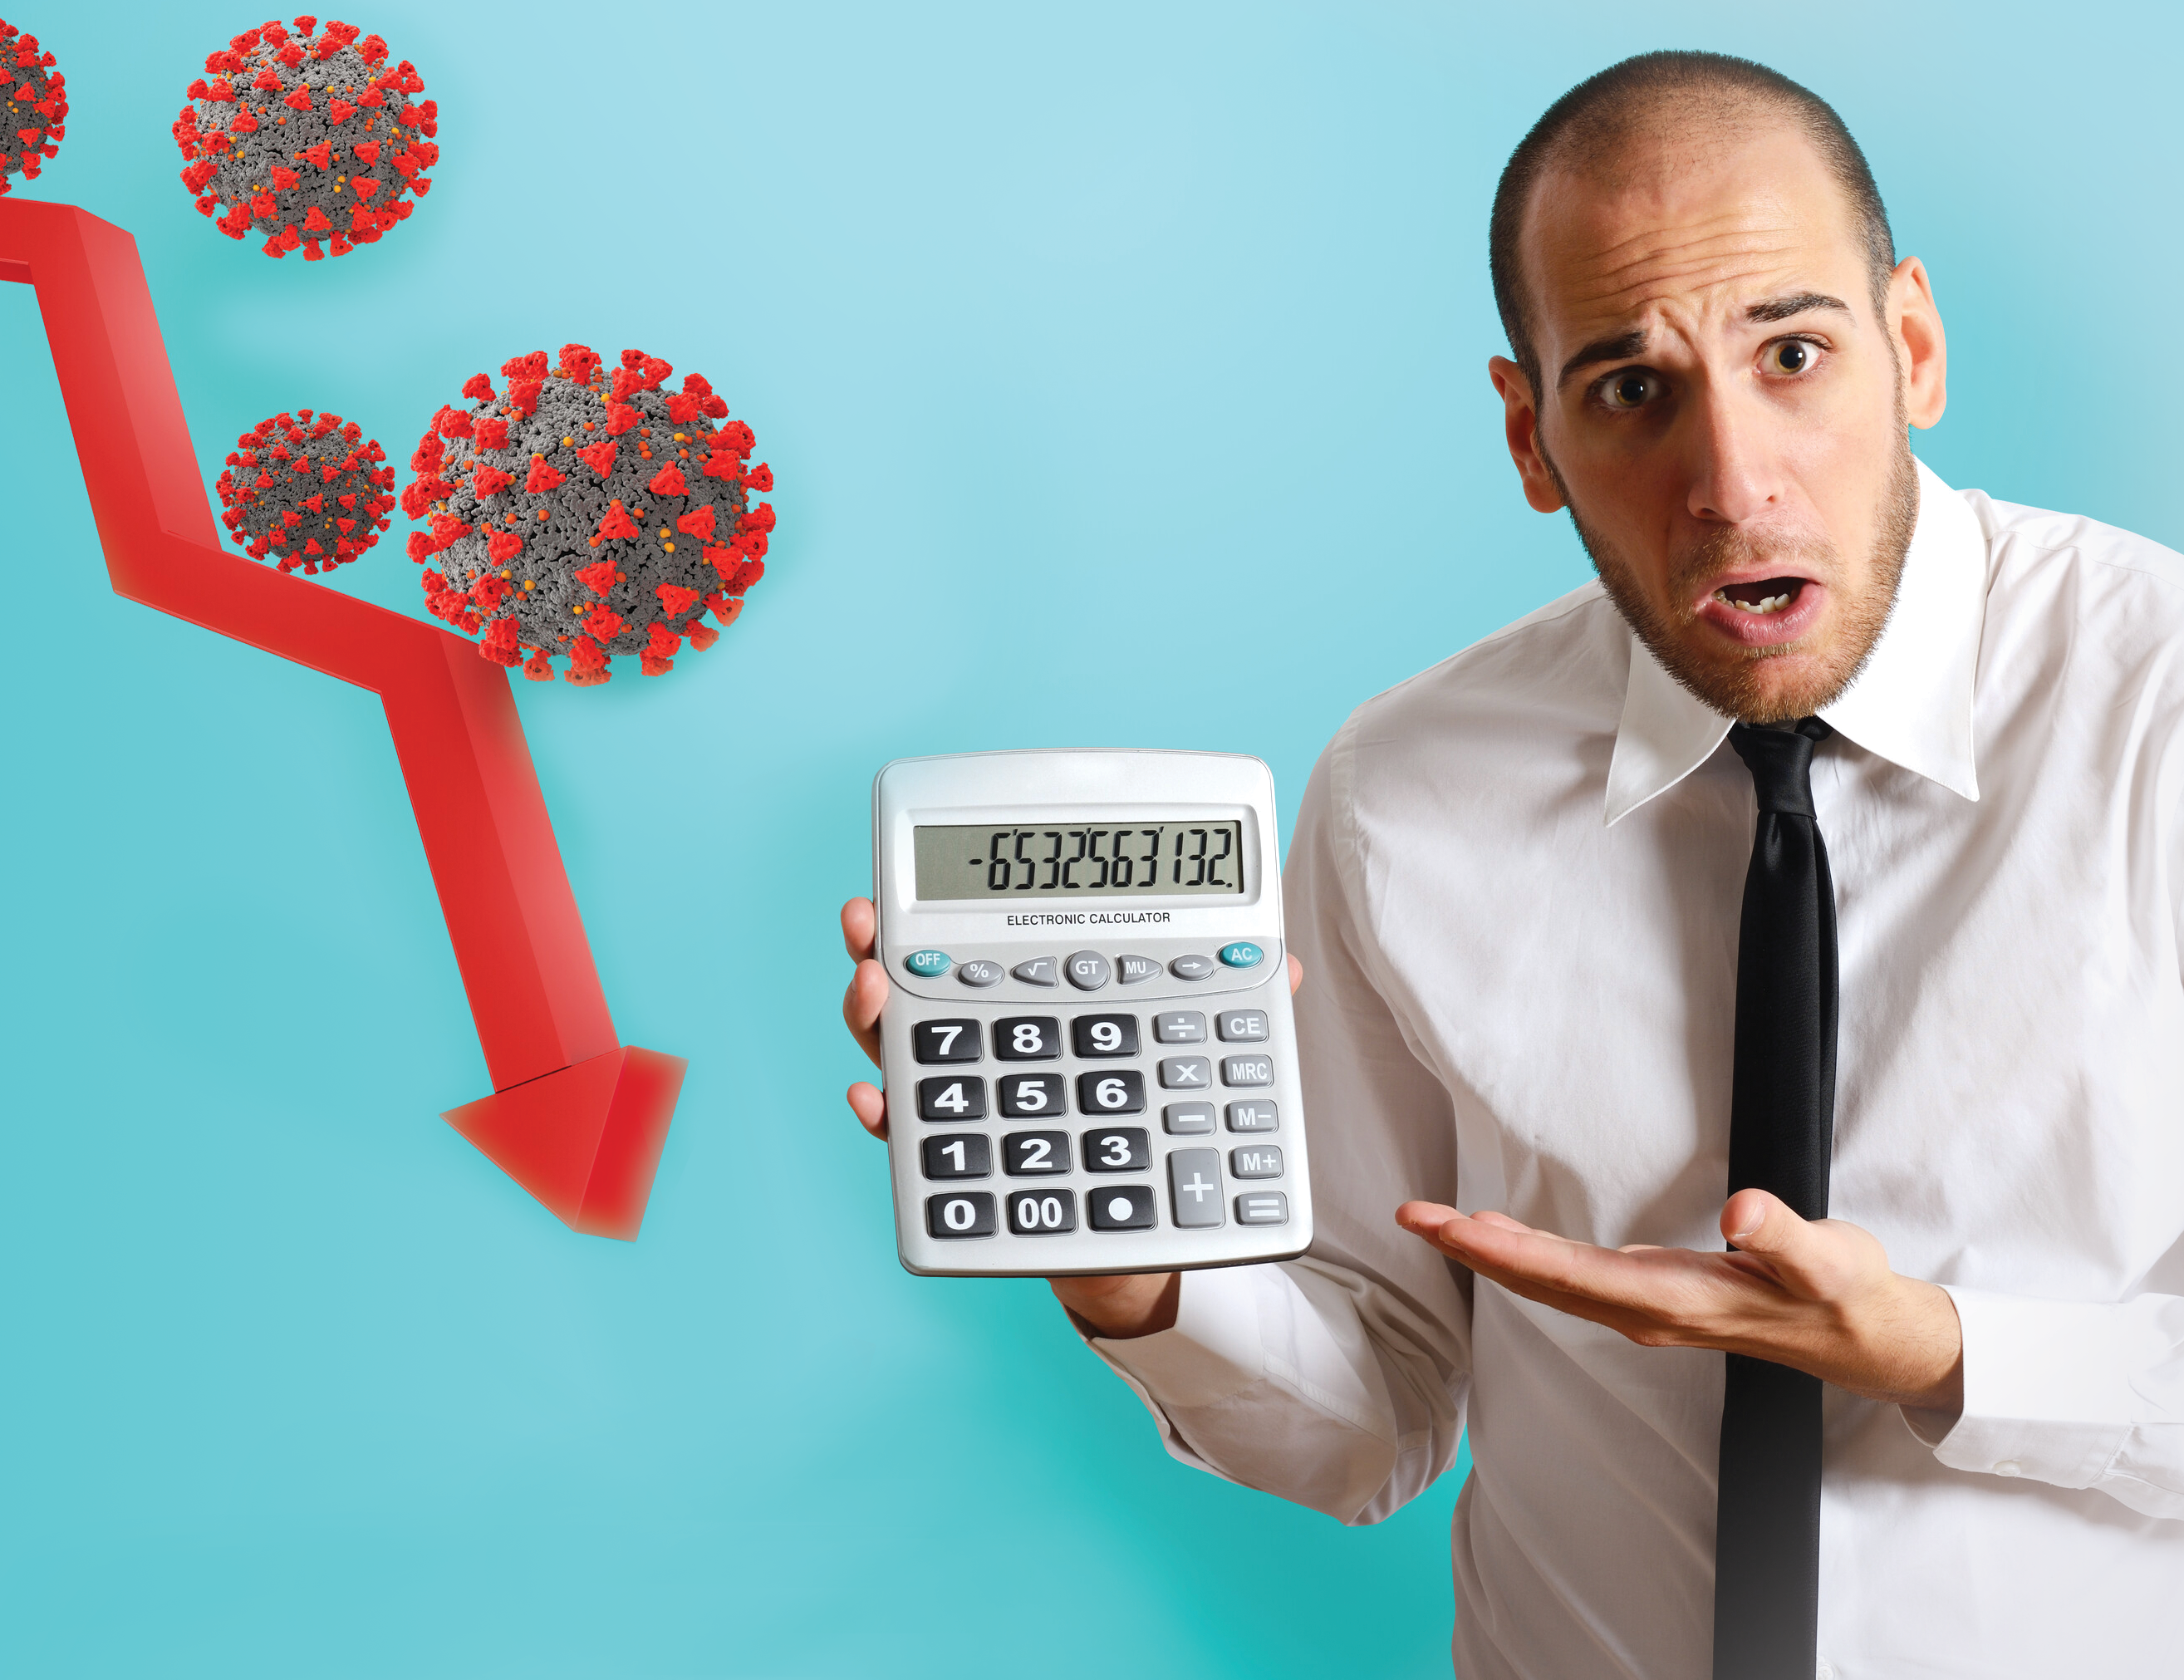 man pointing at a calculator looking shocked with a downwards arrow next to a cartoon of a virus